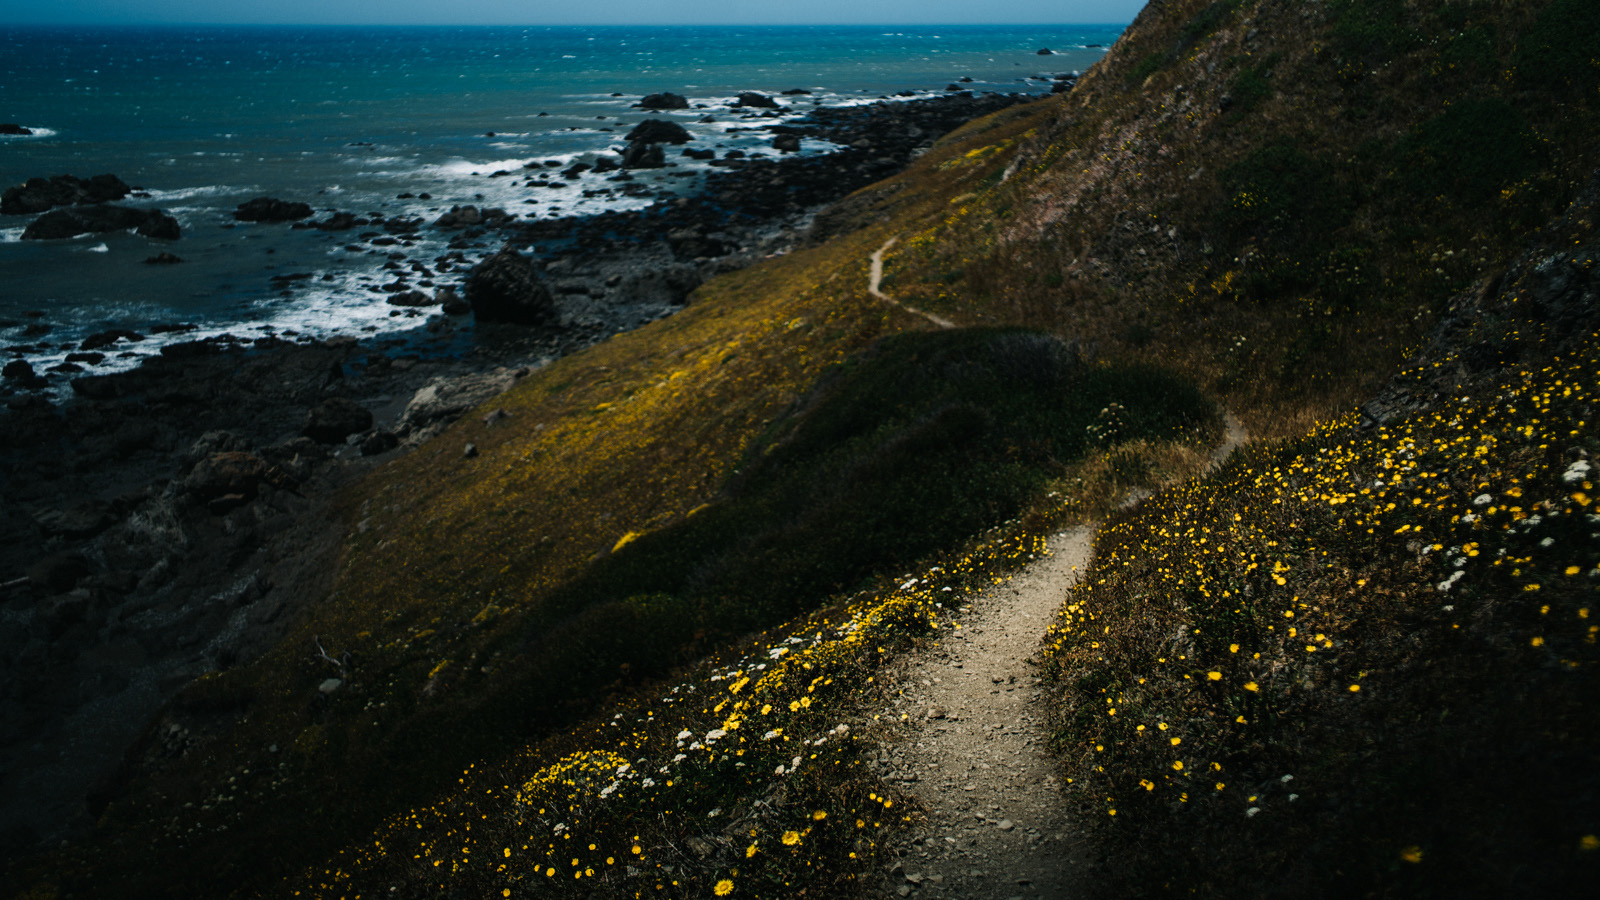 The Lost Coast Trail saw us through just under thirty miles of the longest stretch of totally undeveloped U.S. Pacific coastline outside of Alaska.